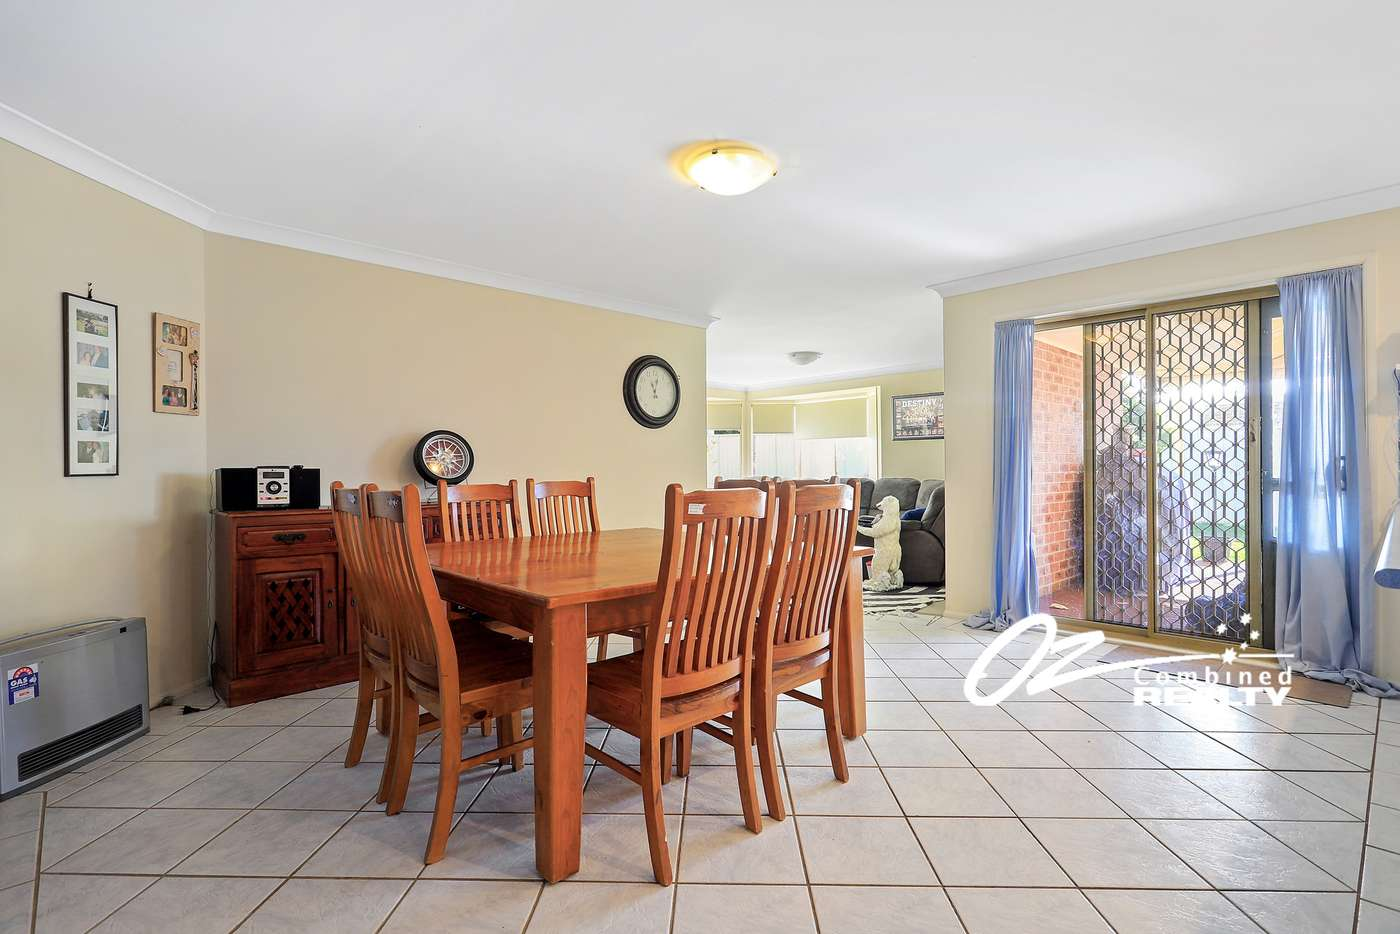 Sixth view of Homely house listing, 10 Kurraba Place, St Georges Basin NSW 2540